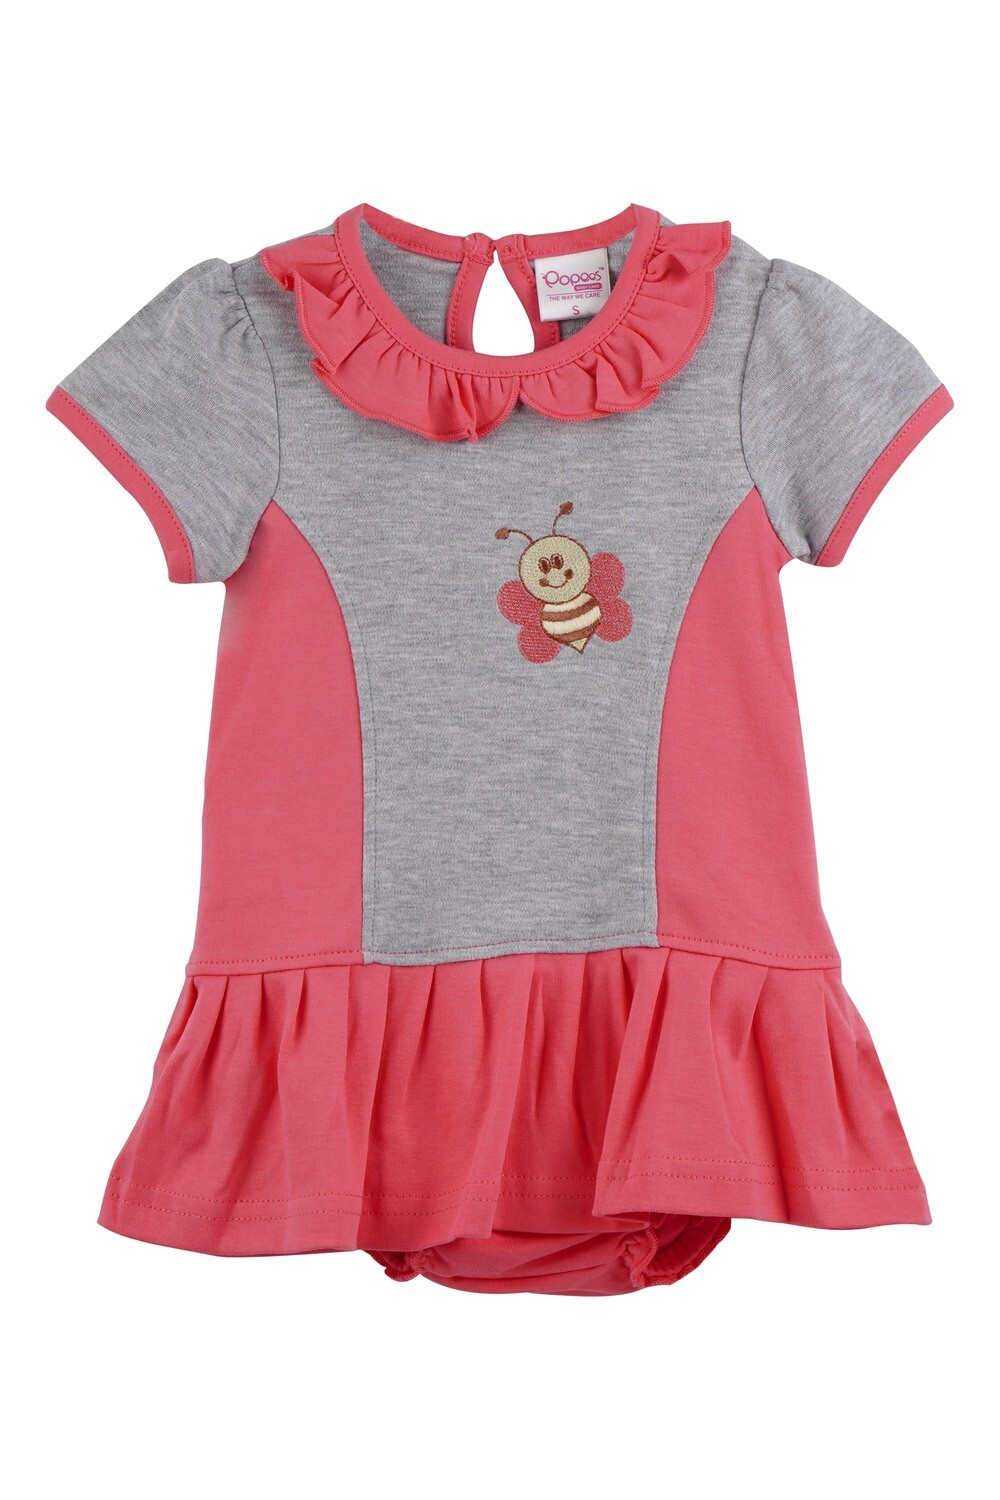 Omega Corel Half Sleeve Frock with Bloomer for Baby Girls